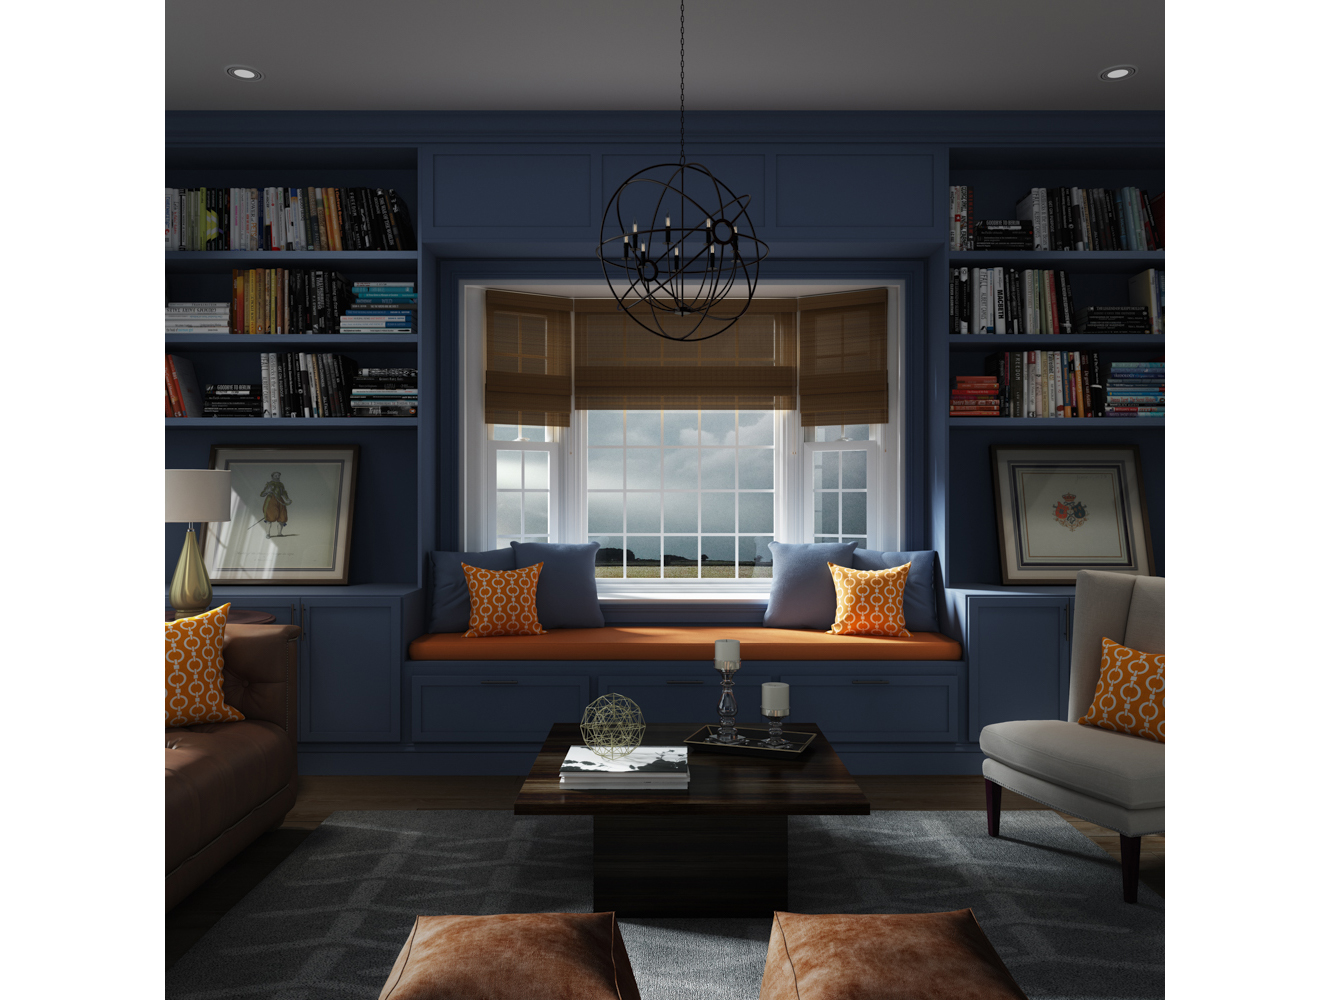 CG Photorealistic Rendering created by PIX-US.